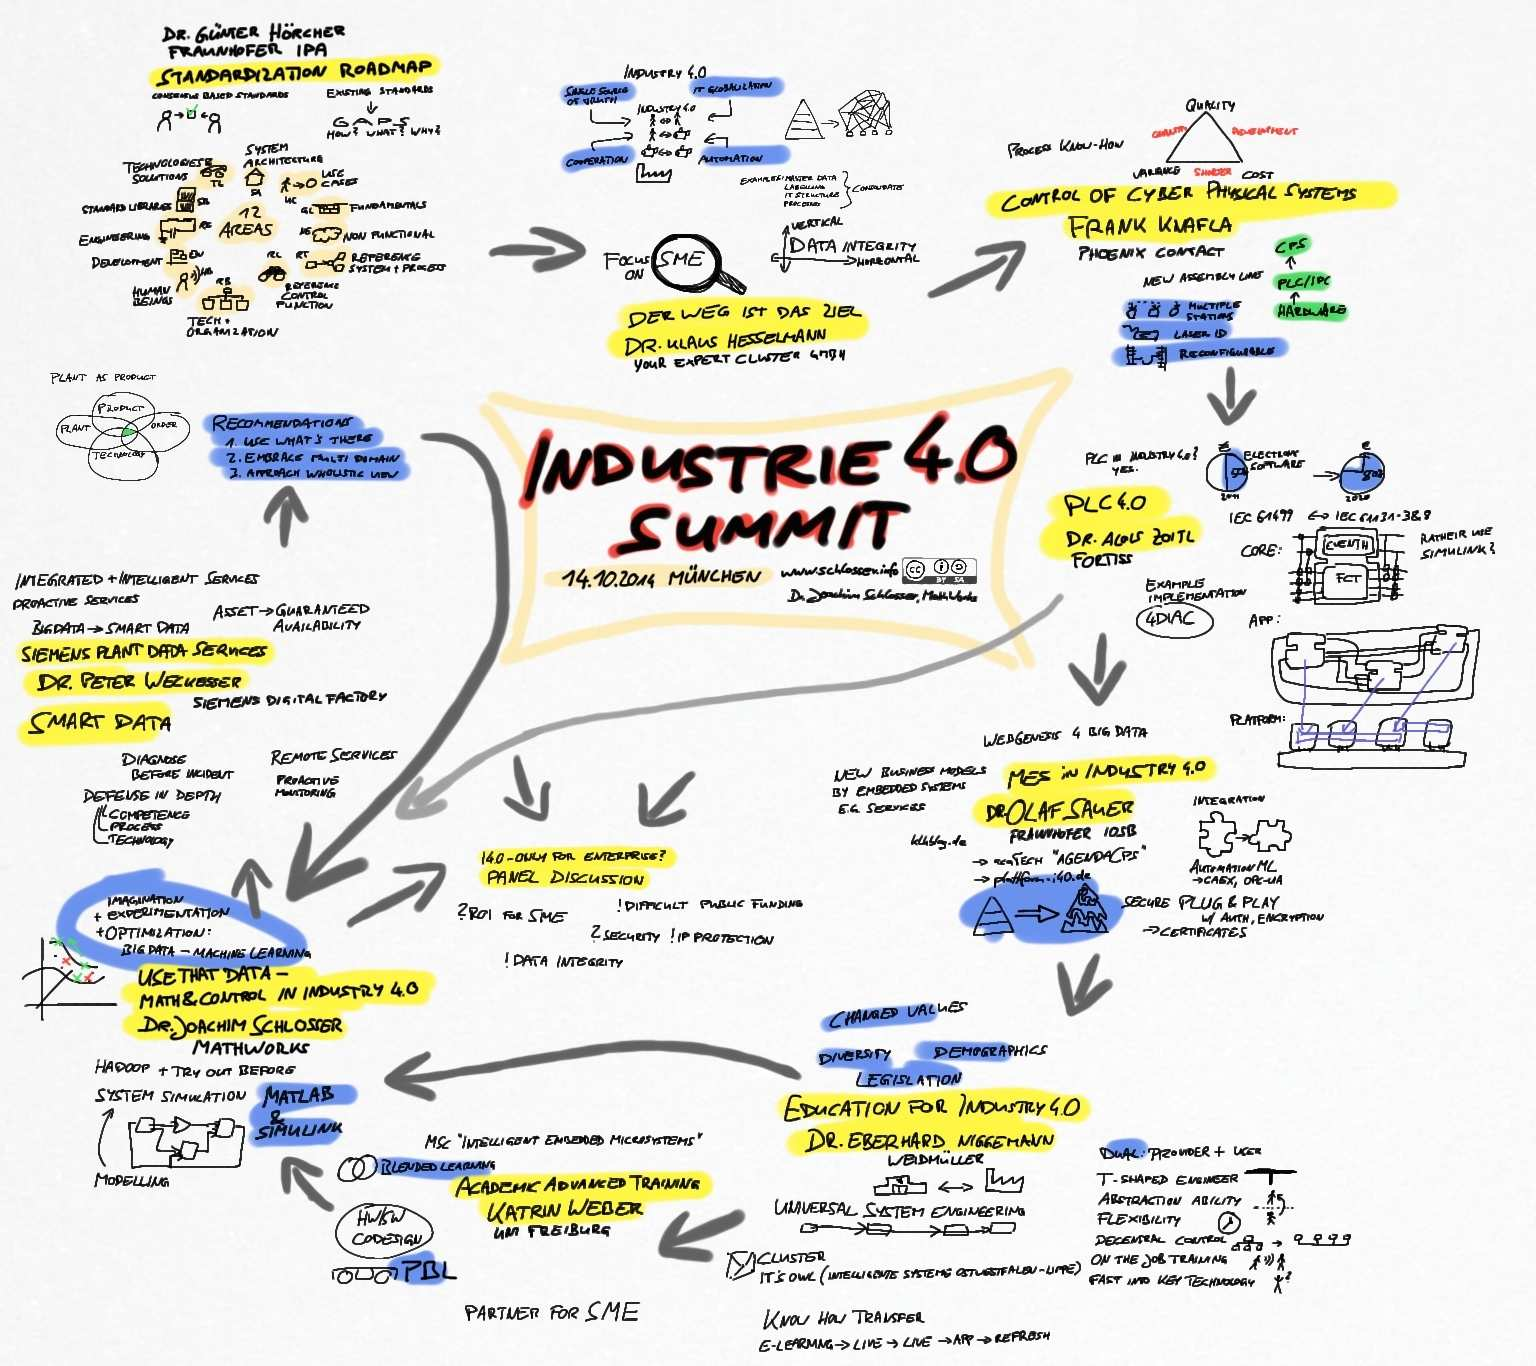 industrie 40 summit sketchnotes - Industrie 40 Beispiele